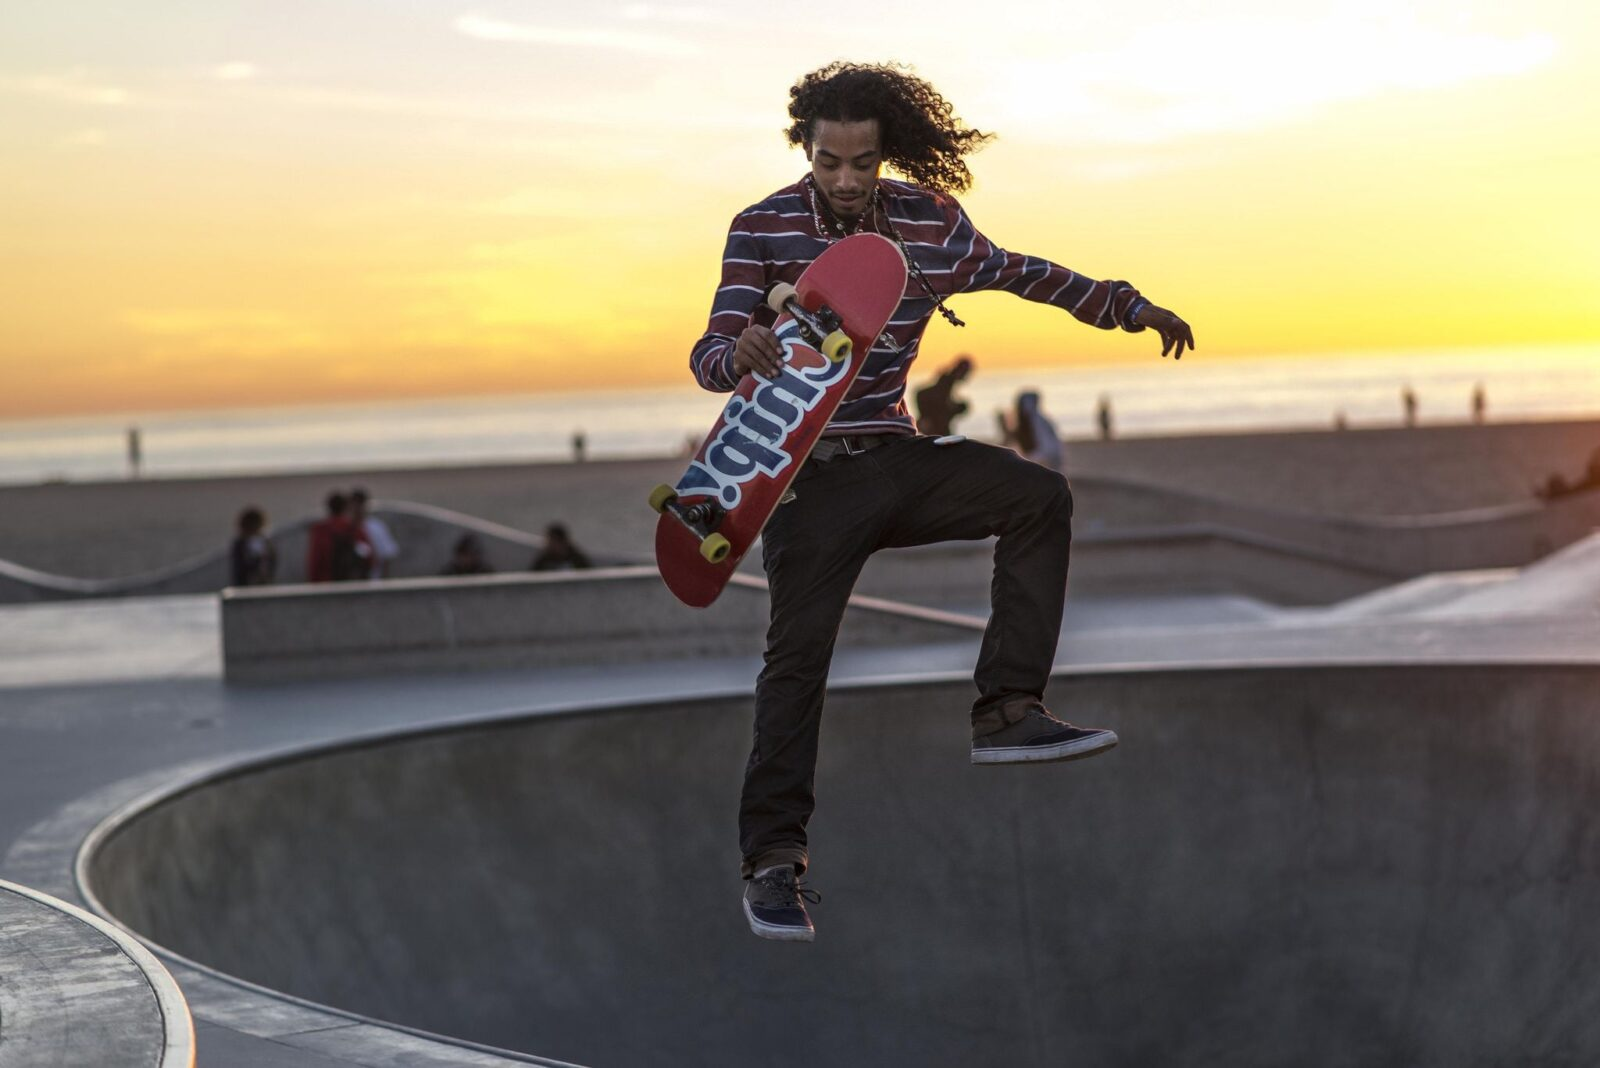 39+ Skateboarding wallpapers HD free Download